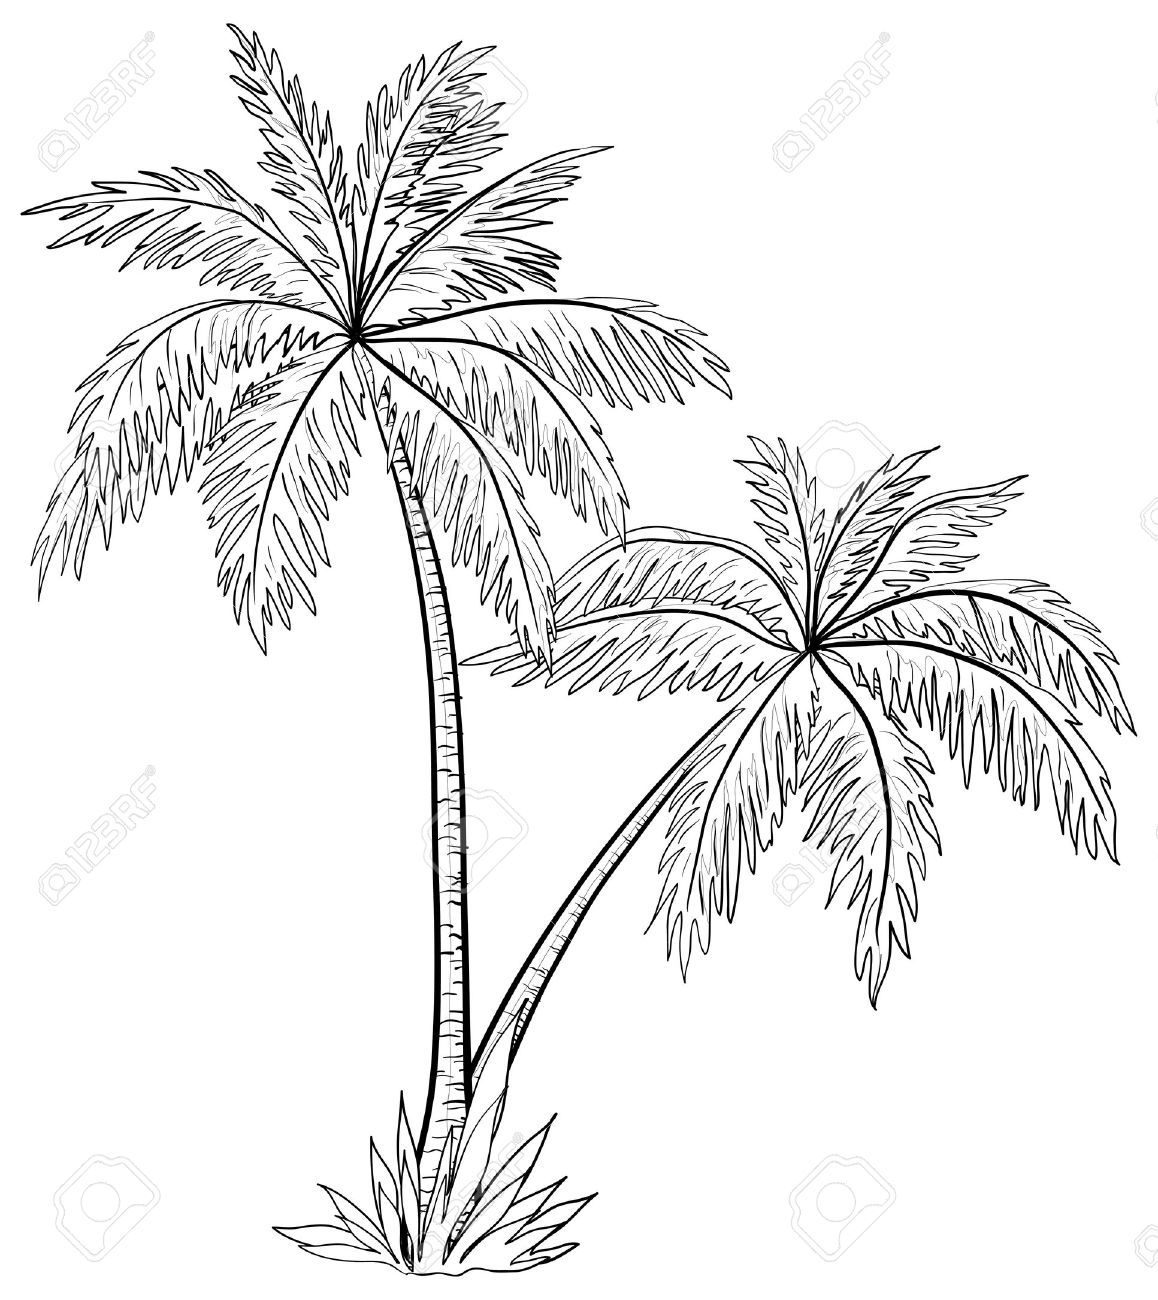 Vector, palm trees with leaves, monochrome contours on white background Stock Vector - 10588984